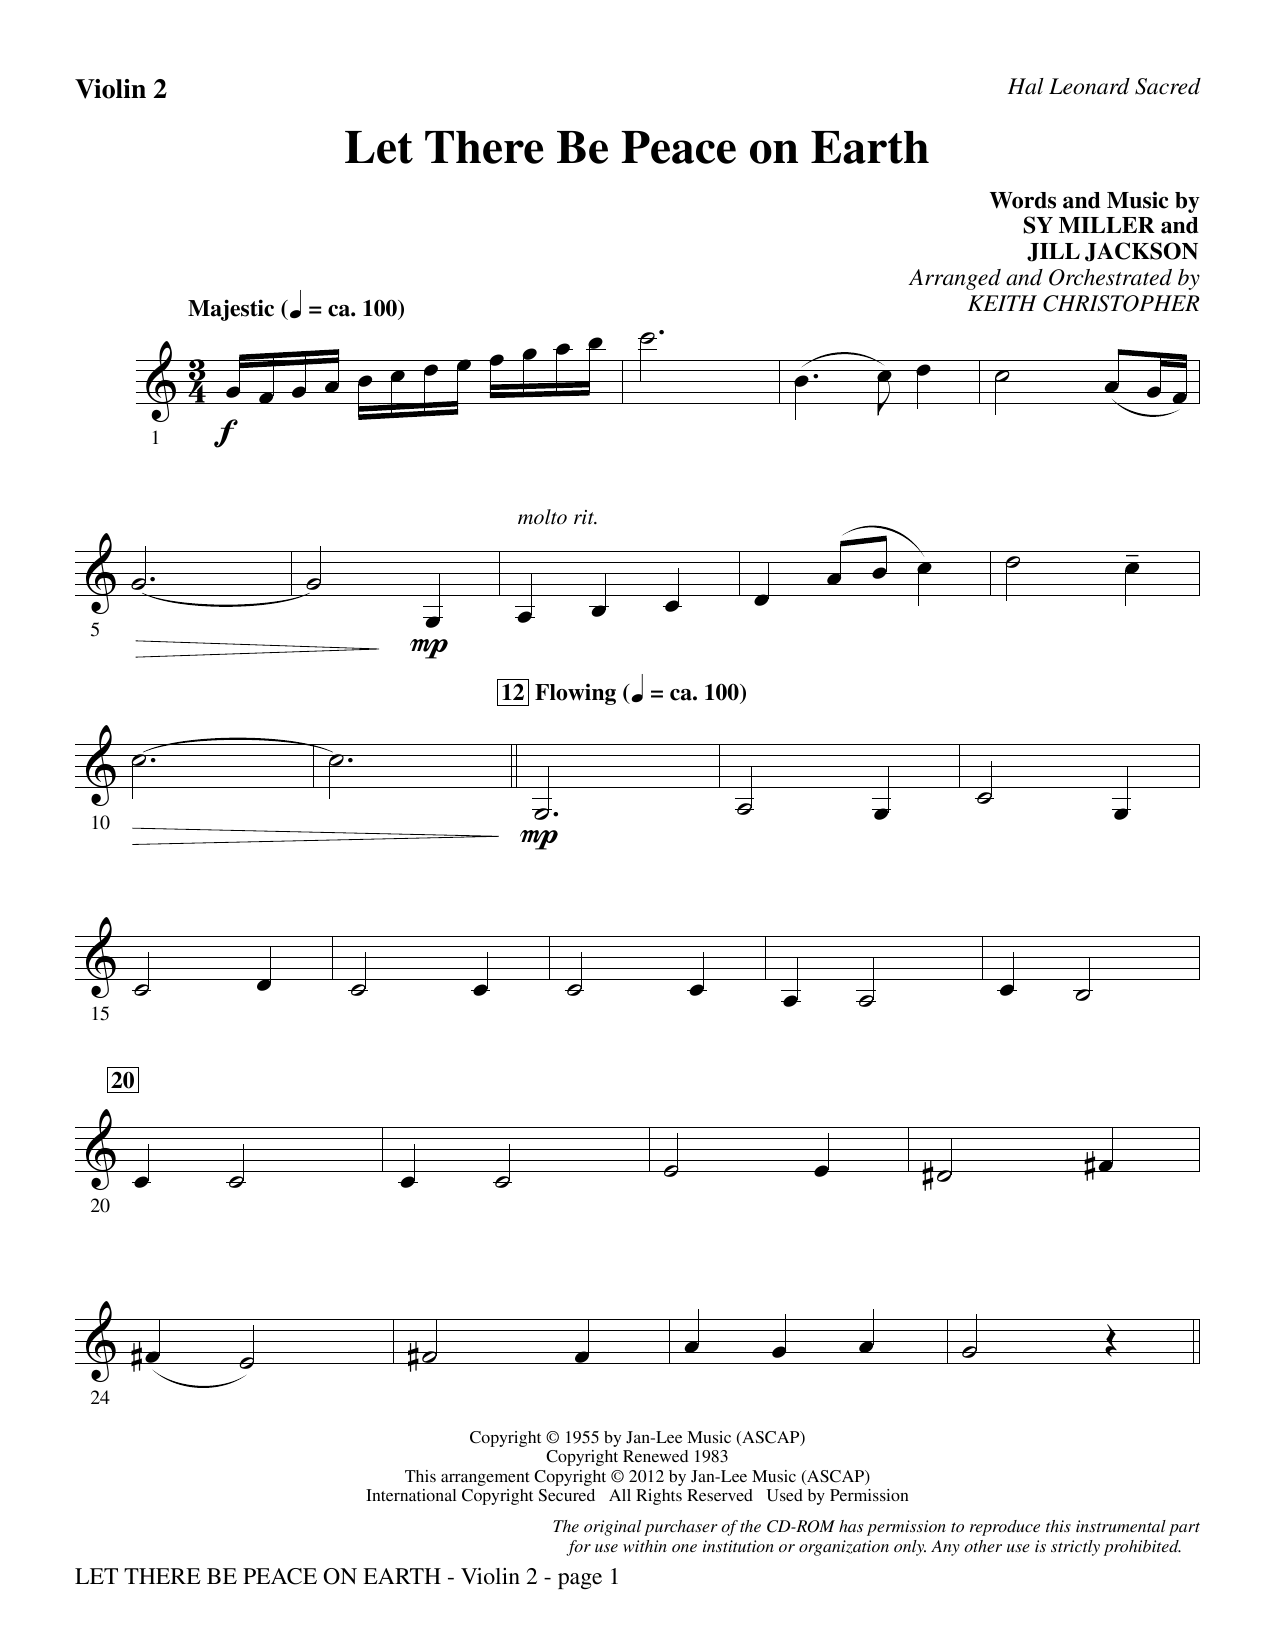 Let There Be Peace On Earth - Violin 2 Sheet Music